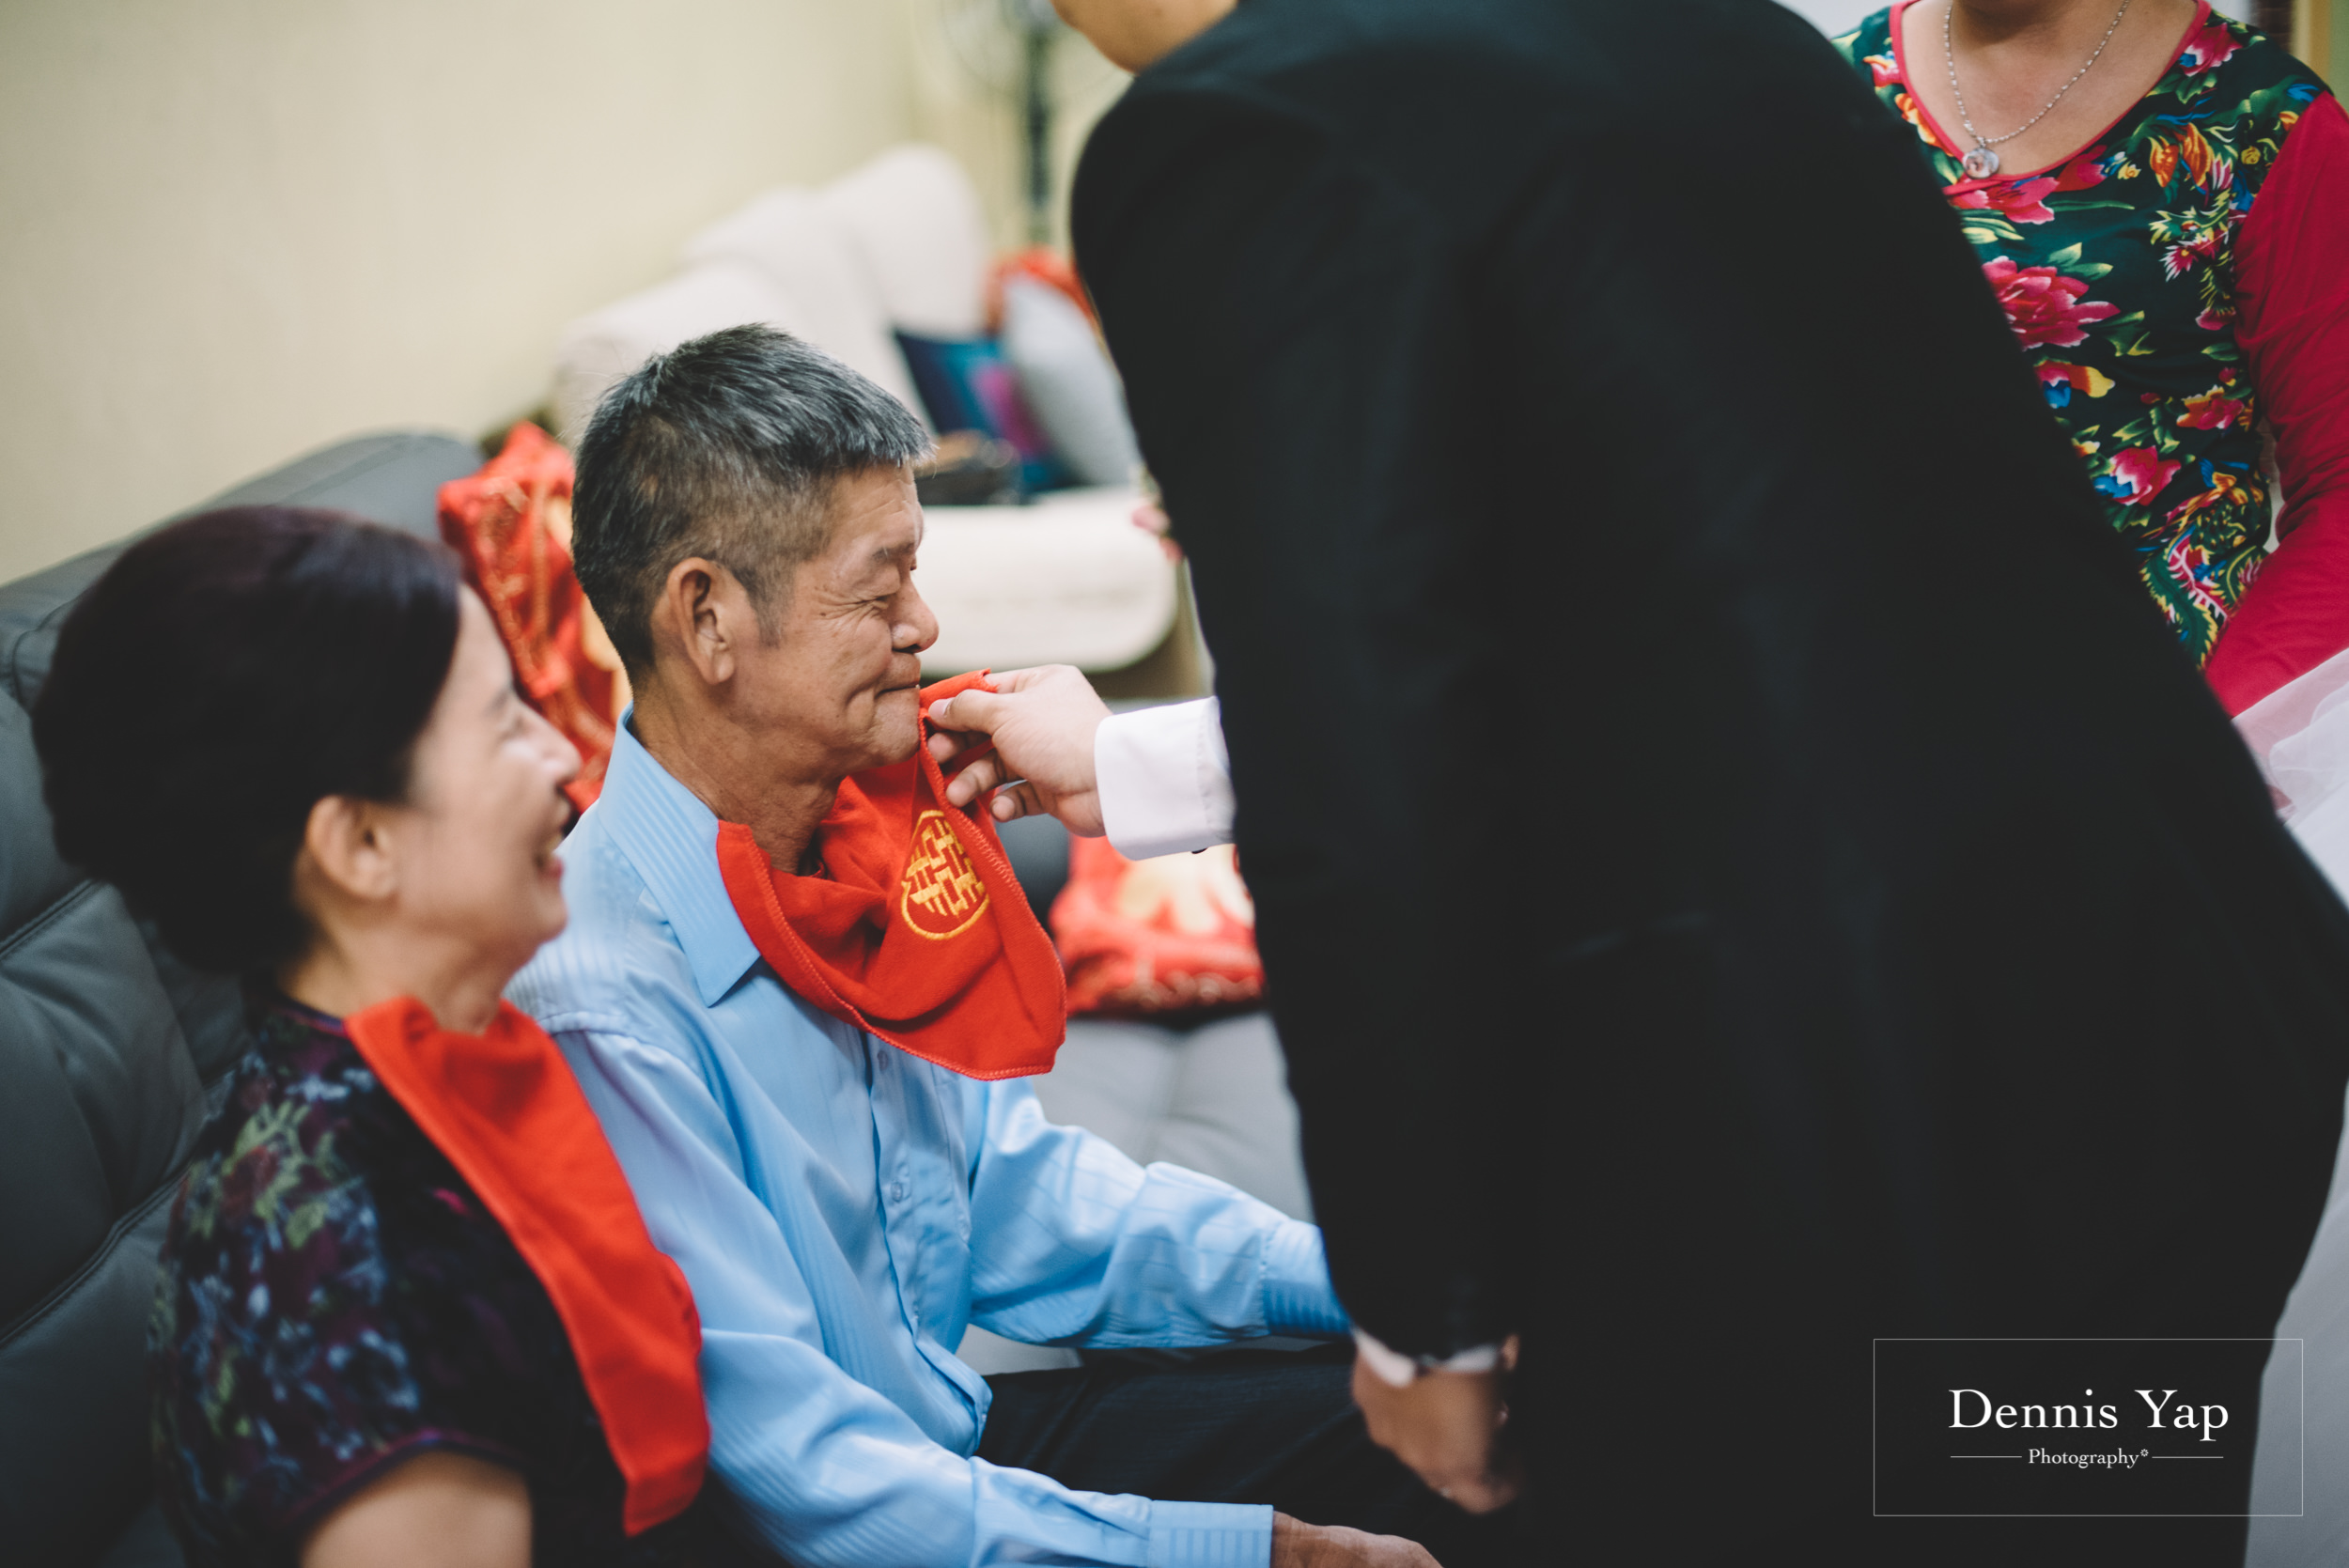 marcus emily wedding day gift exchange malaysia dennis yap photography-12.jpg